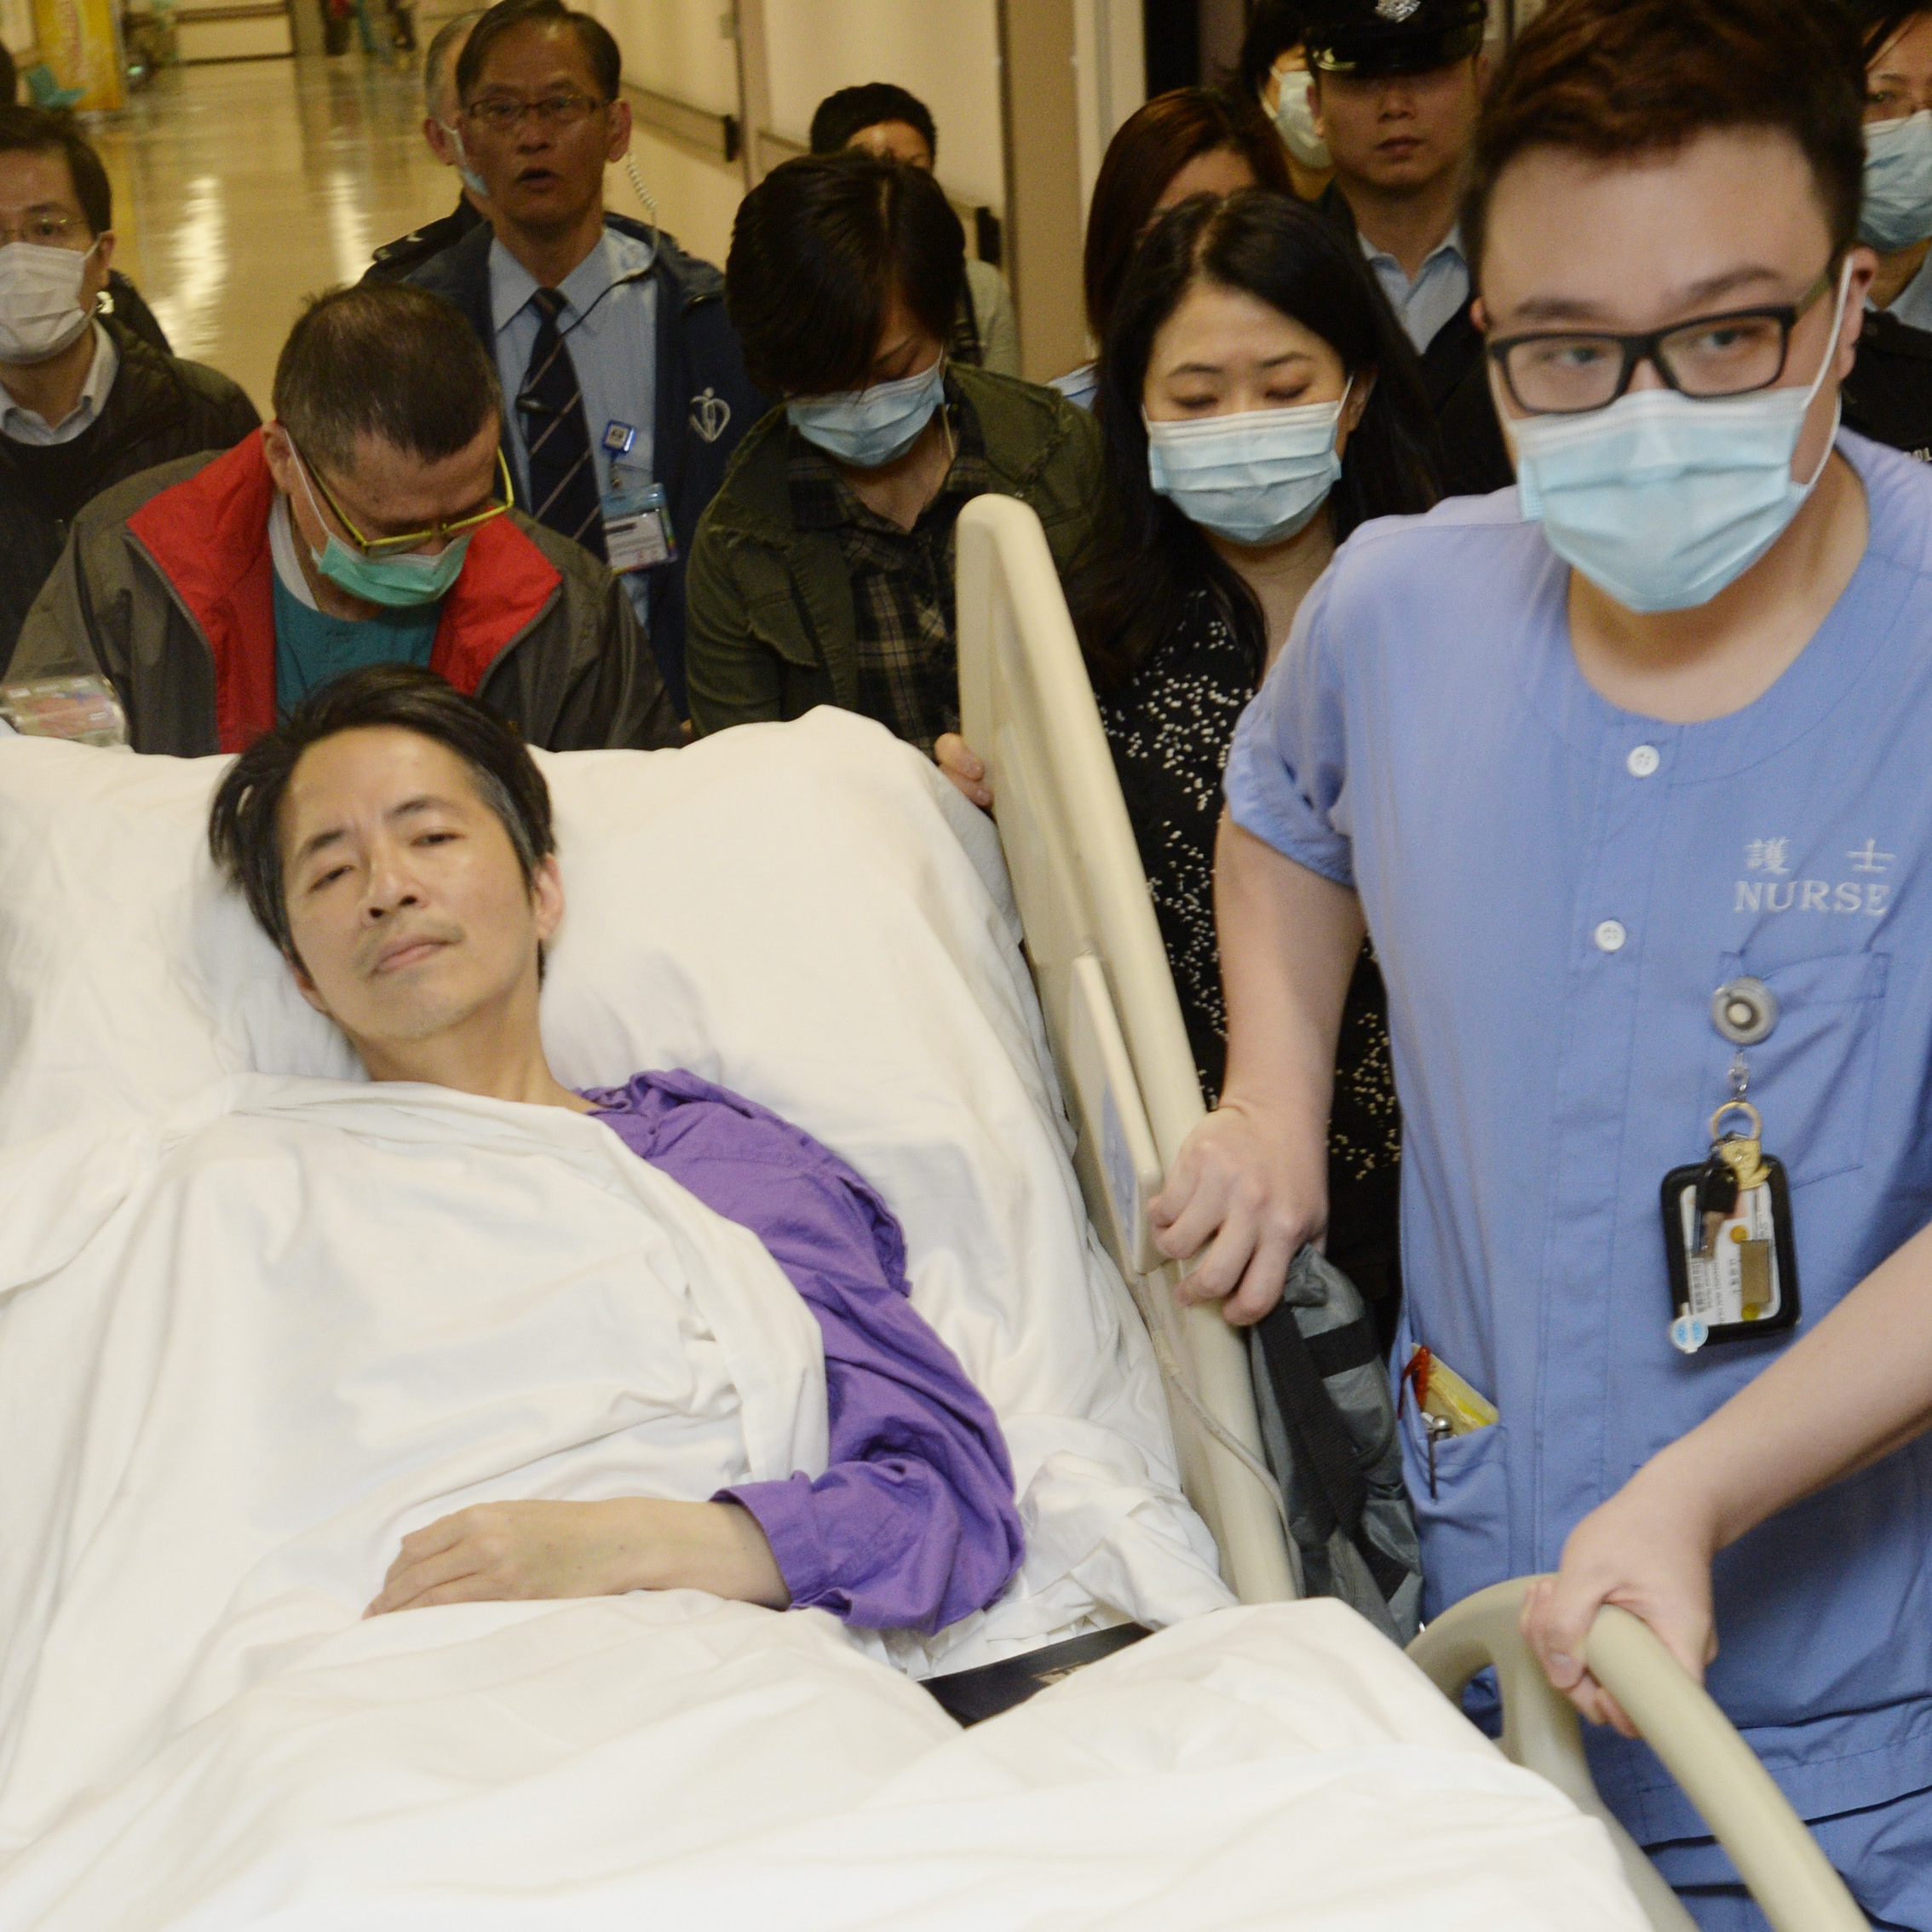 Former Ming Pao chief editor Kevin Lau is transferred to a private ward in a hospital Saturday in Hong Kong after three days in intensive care.